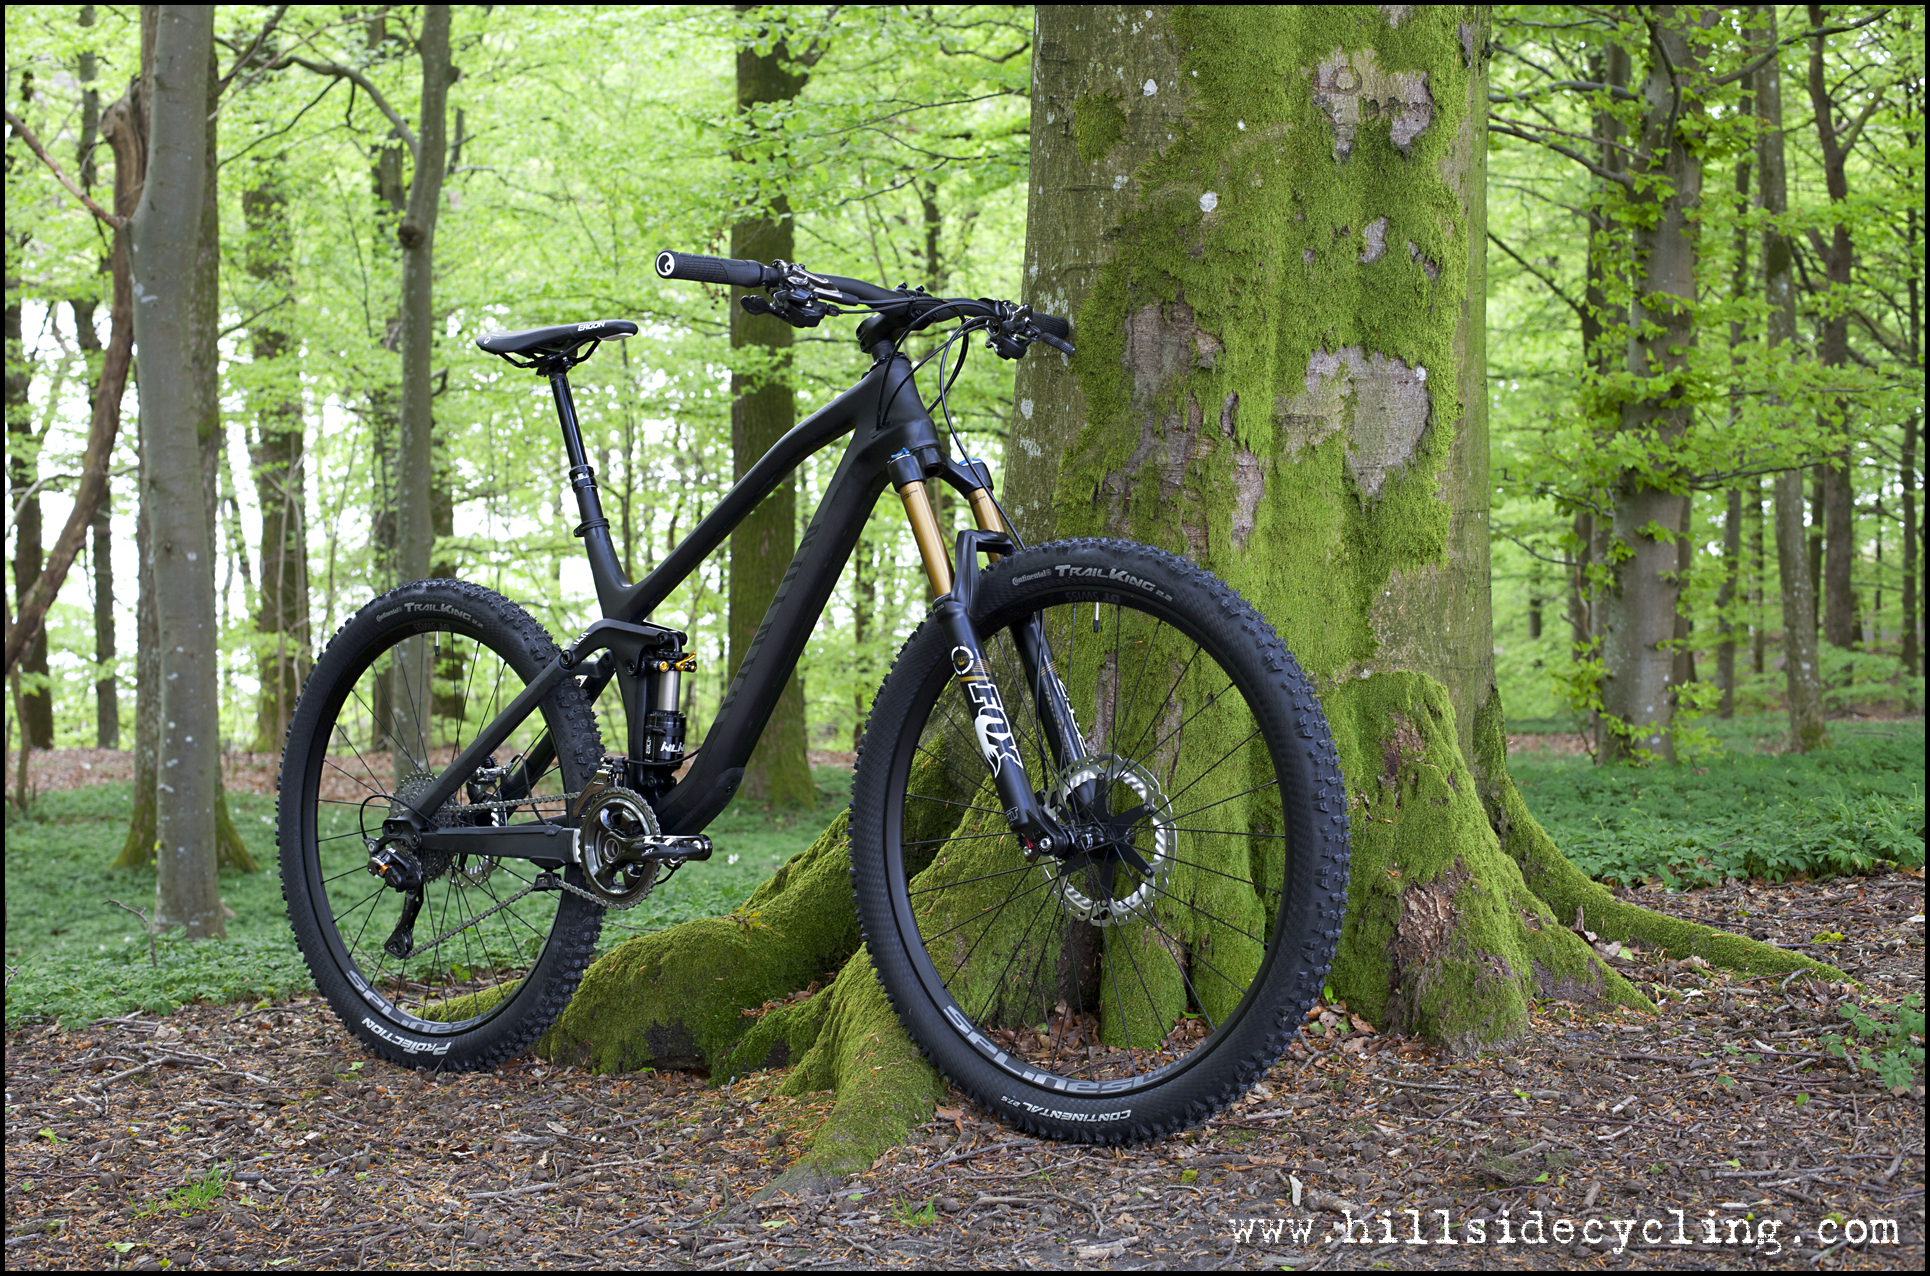 2015 Canyon Spectral Cf 9 0 Sl Stealth Hillside Cycling